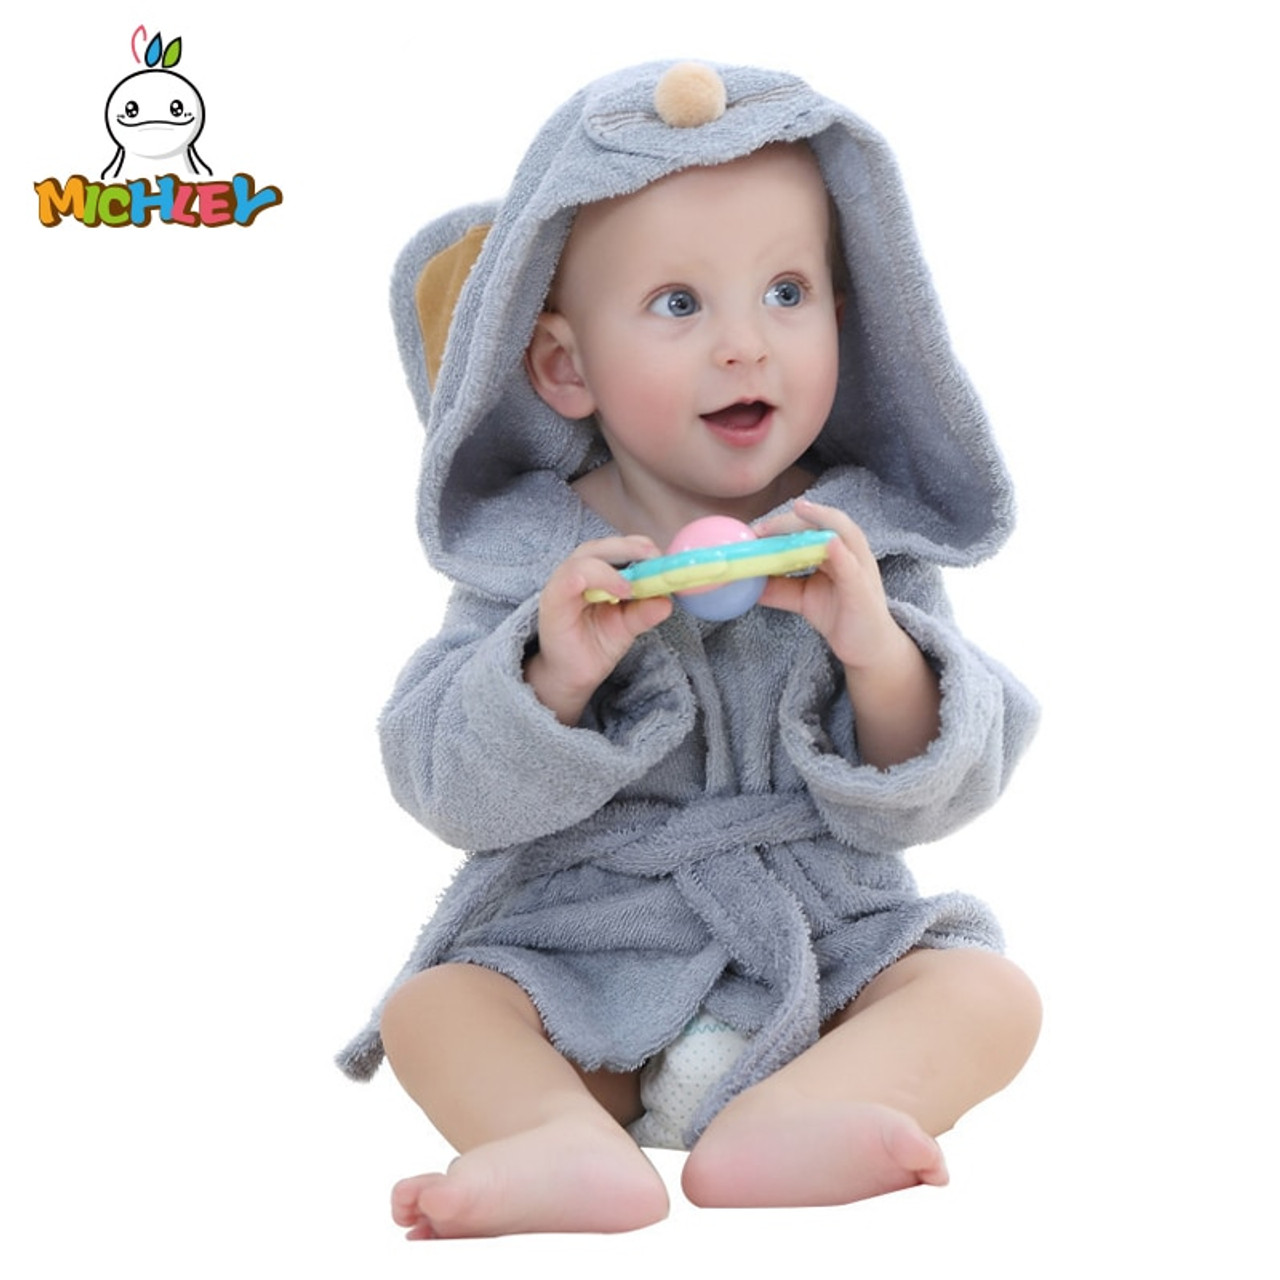 Michley Fashion Designs Hooded Animal Modeling Baby Bathrobe Cartoon Babies Character Kids Bath Robes Infant Beach Towels Ye0001 Onshopdeals Com